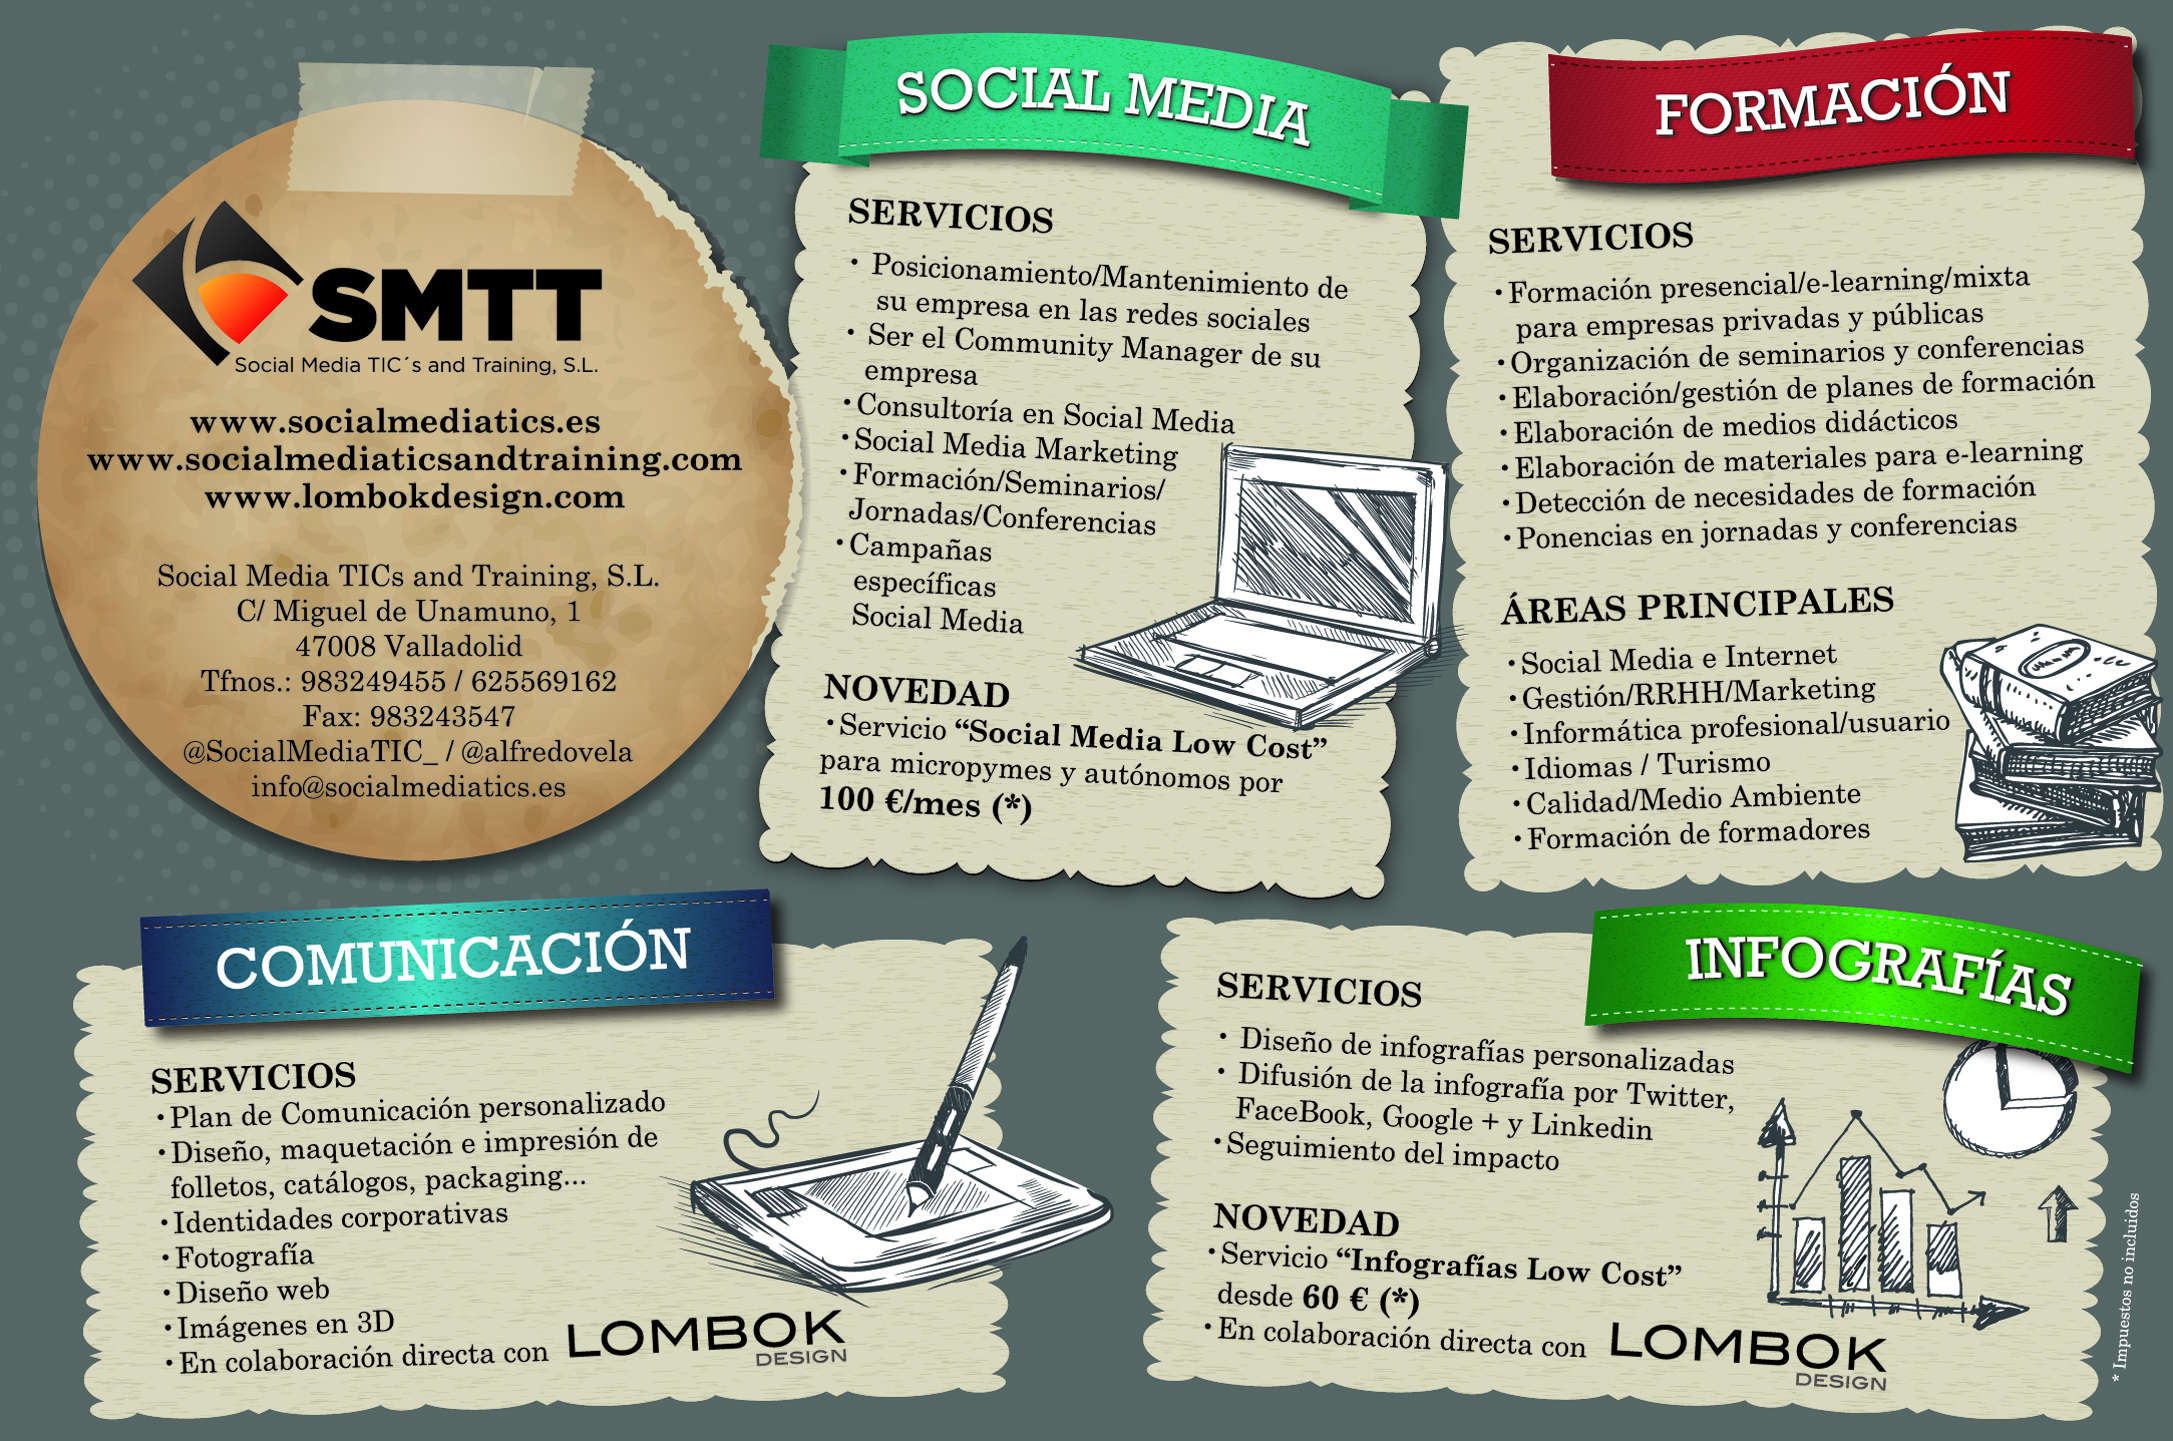 Qué es Social Media TICs and Training, S.L.